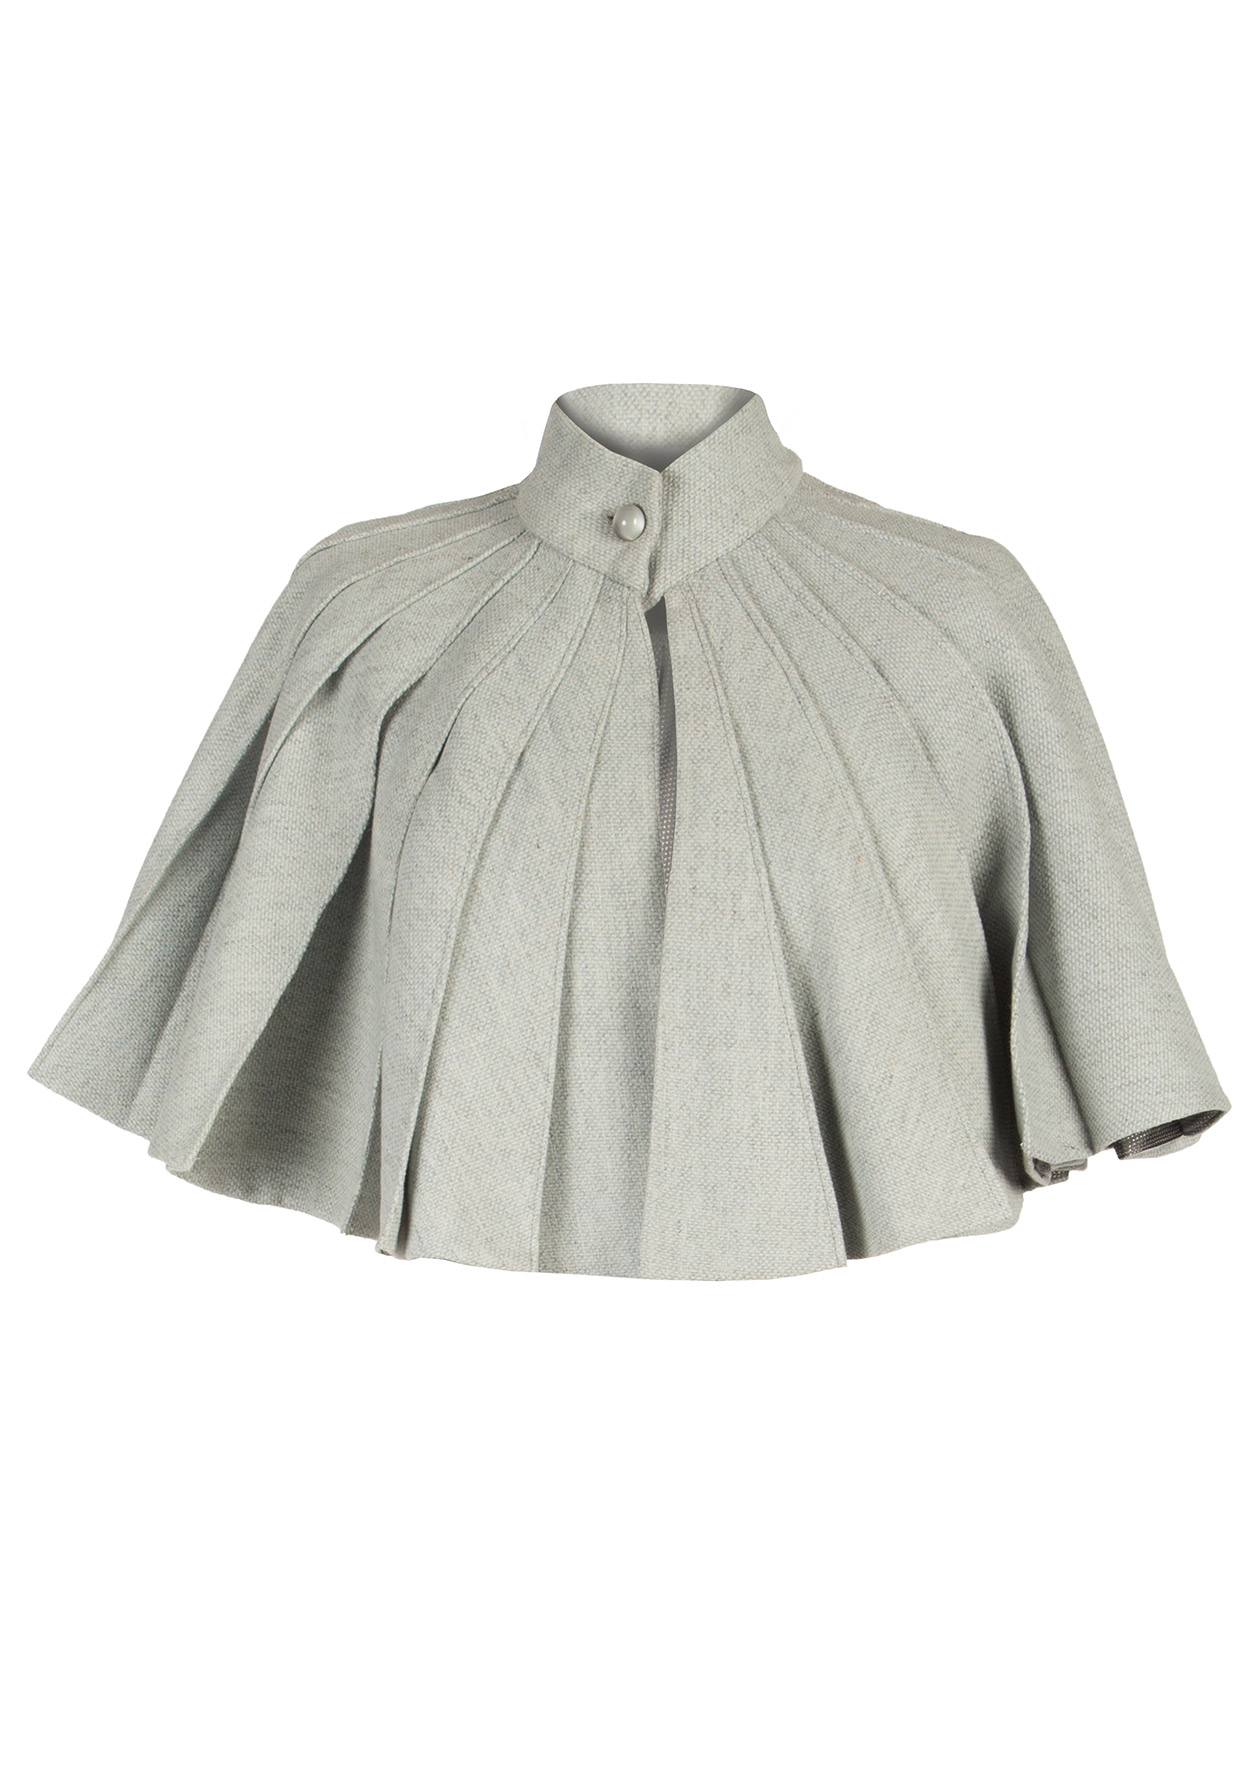 Wool Cape by Diana Kimbayeva on curated-crowd.com